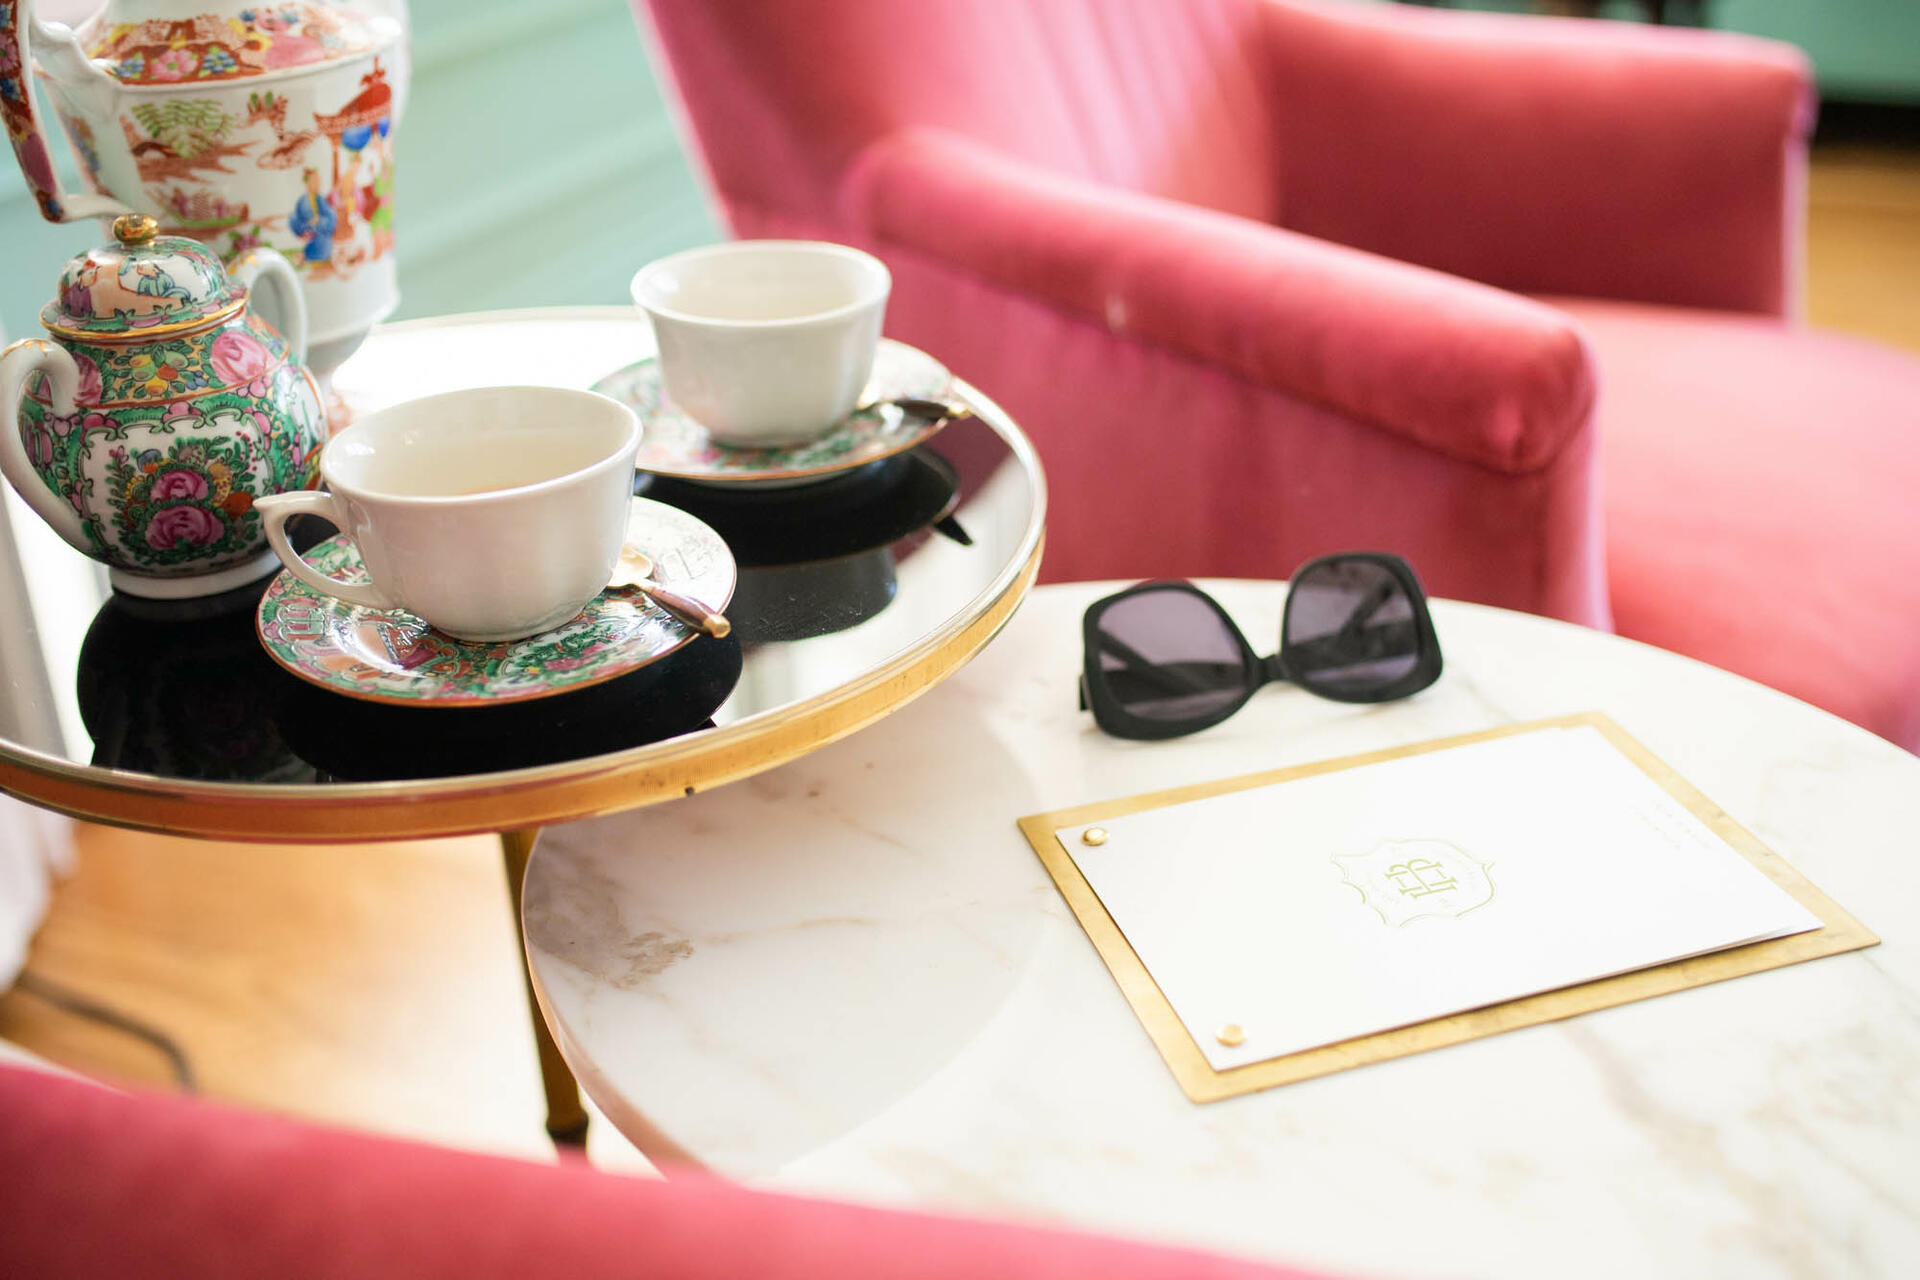 table with sunglasses next to pink chair